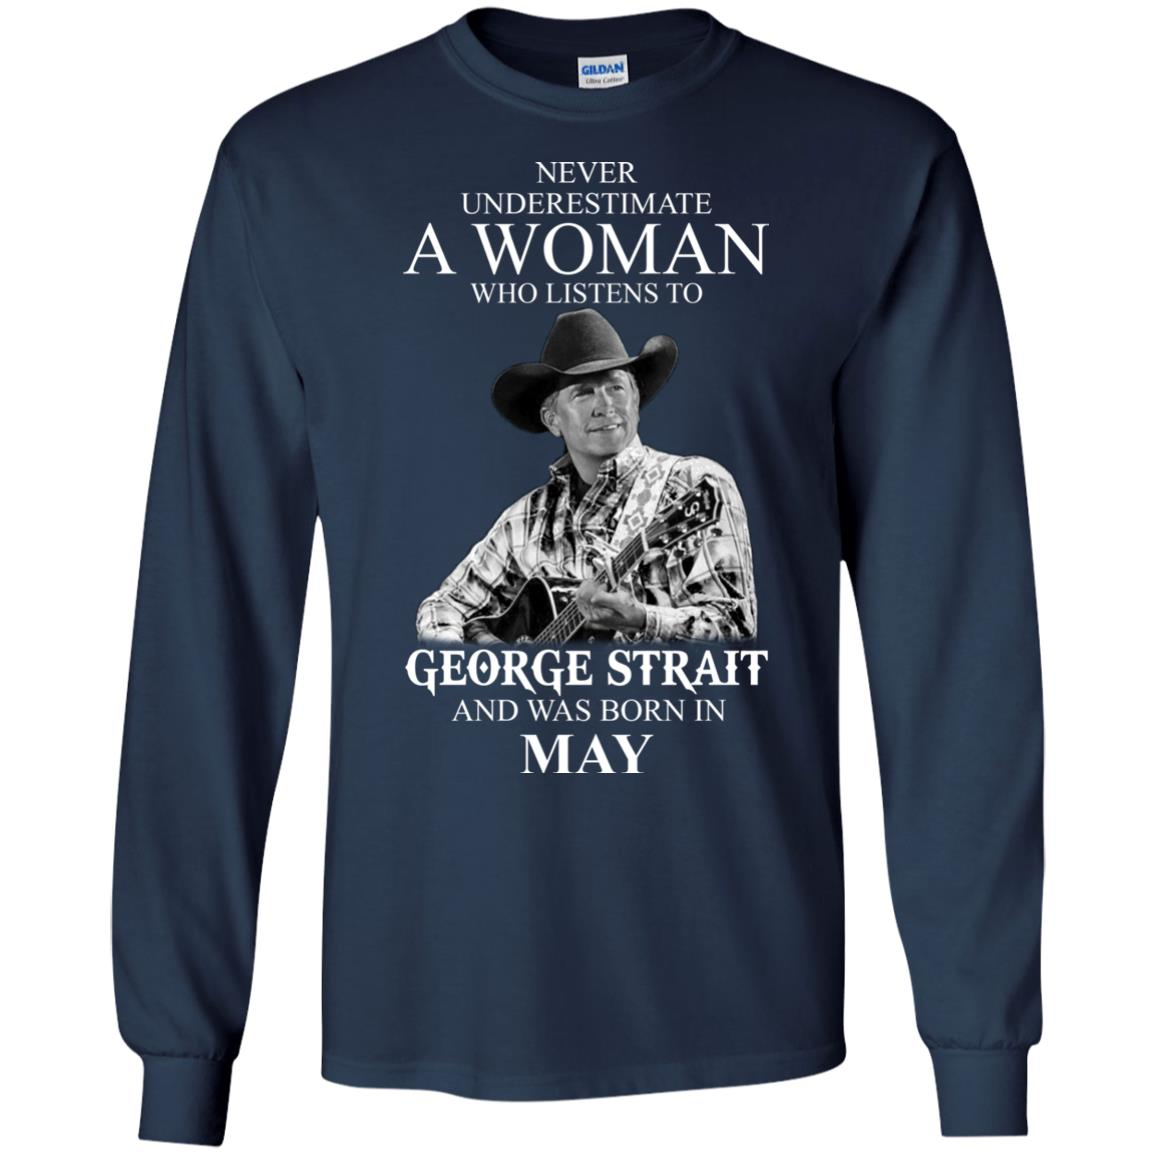 image 413 - Never Underestimate A Woman Who Listens To George Strait And Was Born In May shirt